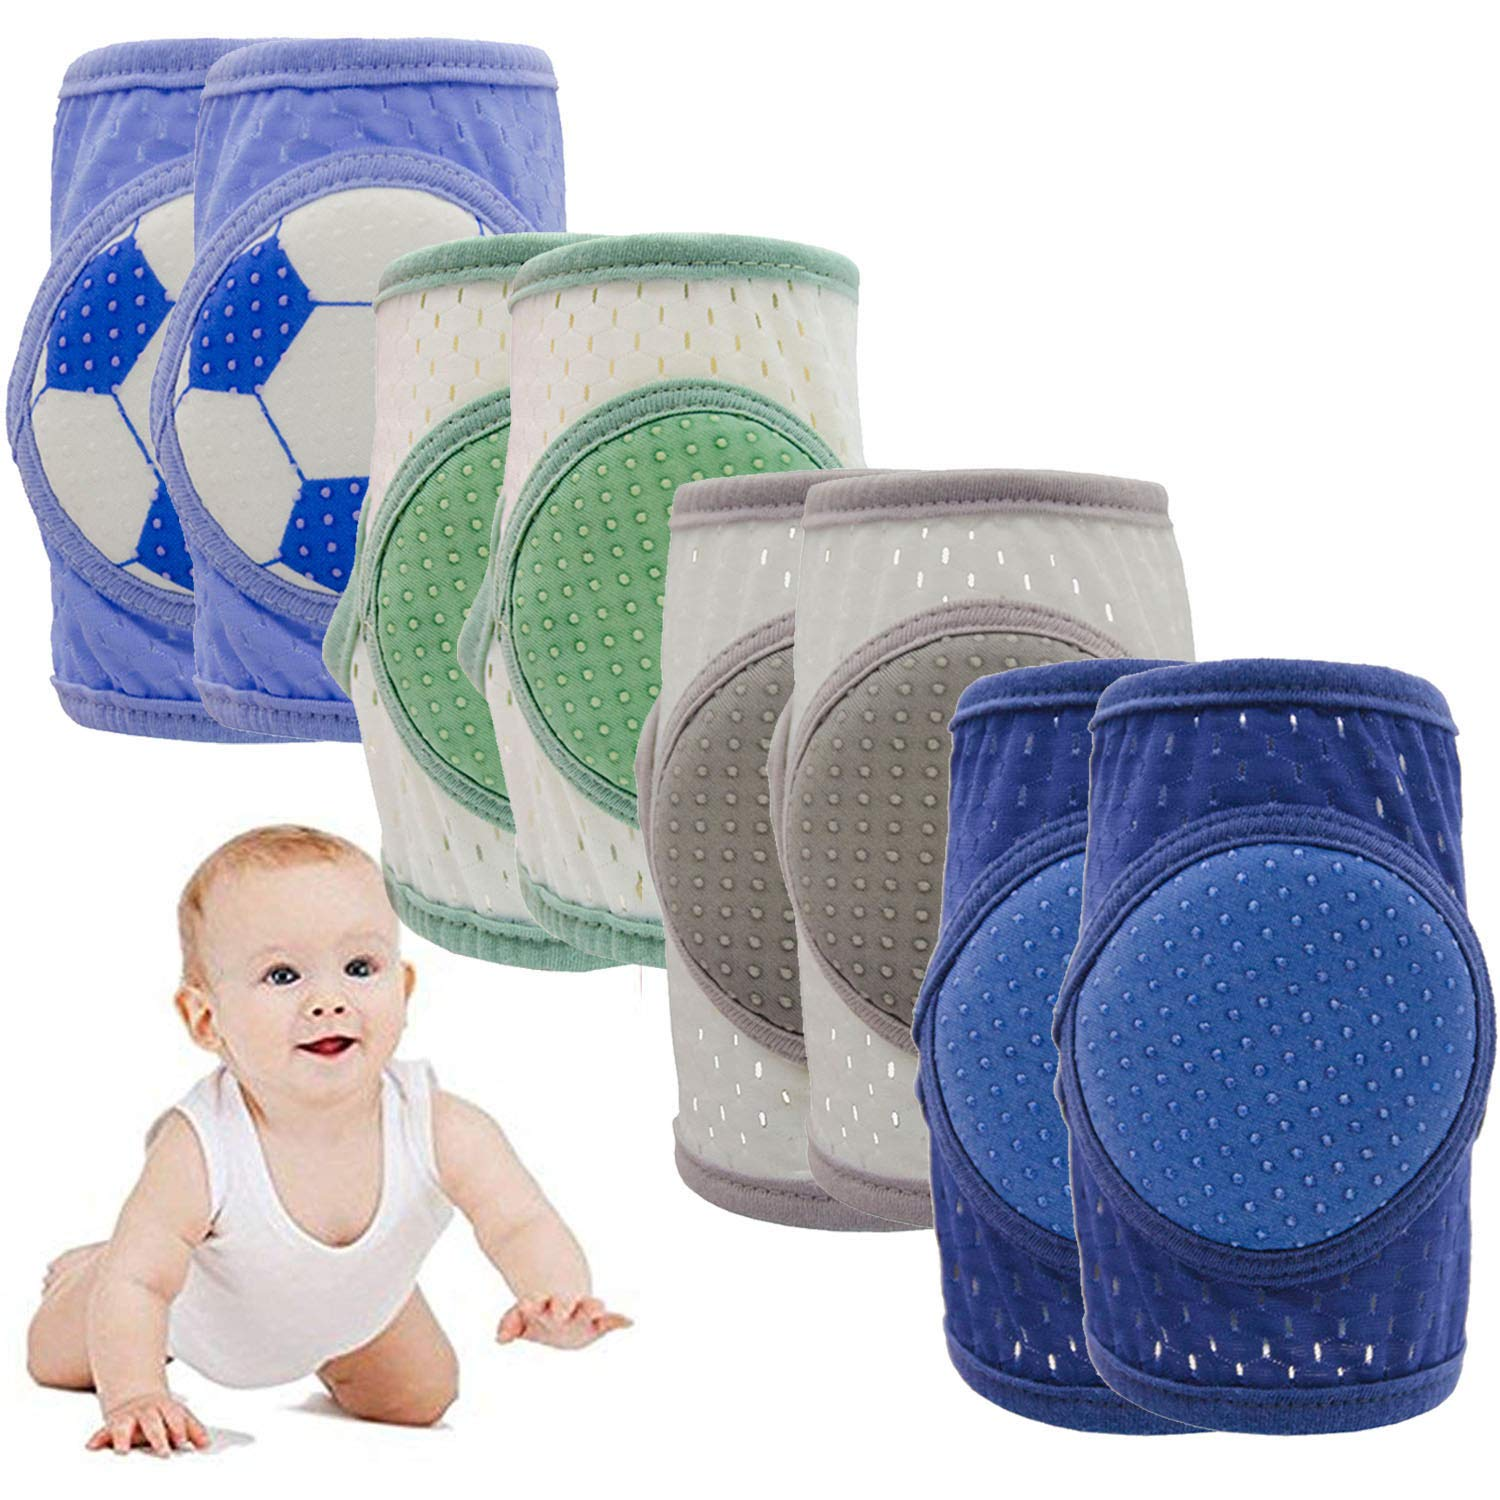 Alpurple 4 Pairs Baby Crawling Cotton Anti Slip Knee Pads- Toddlers Adjustable Breathable Elbow Pads, Warmer Crawling Safety Protective Cover by Purple Star